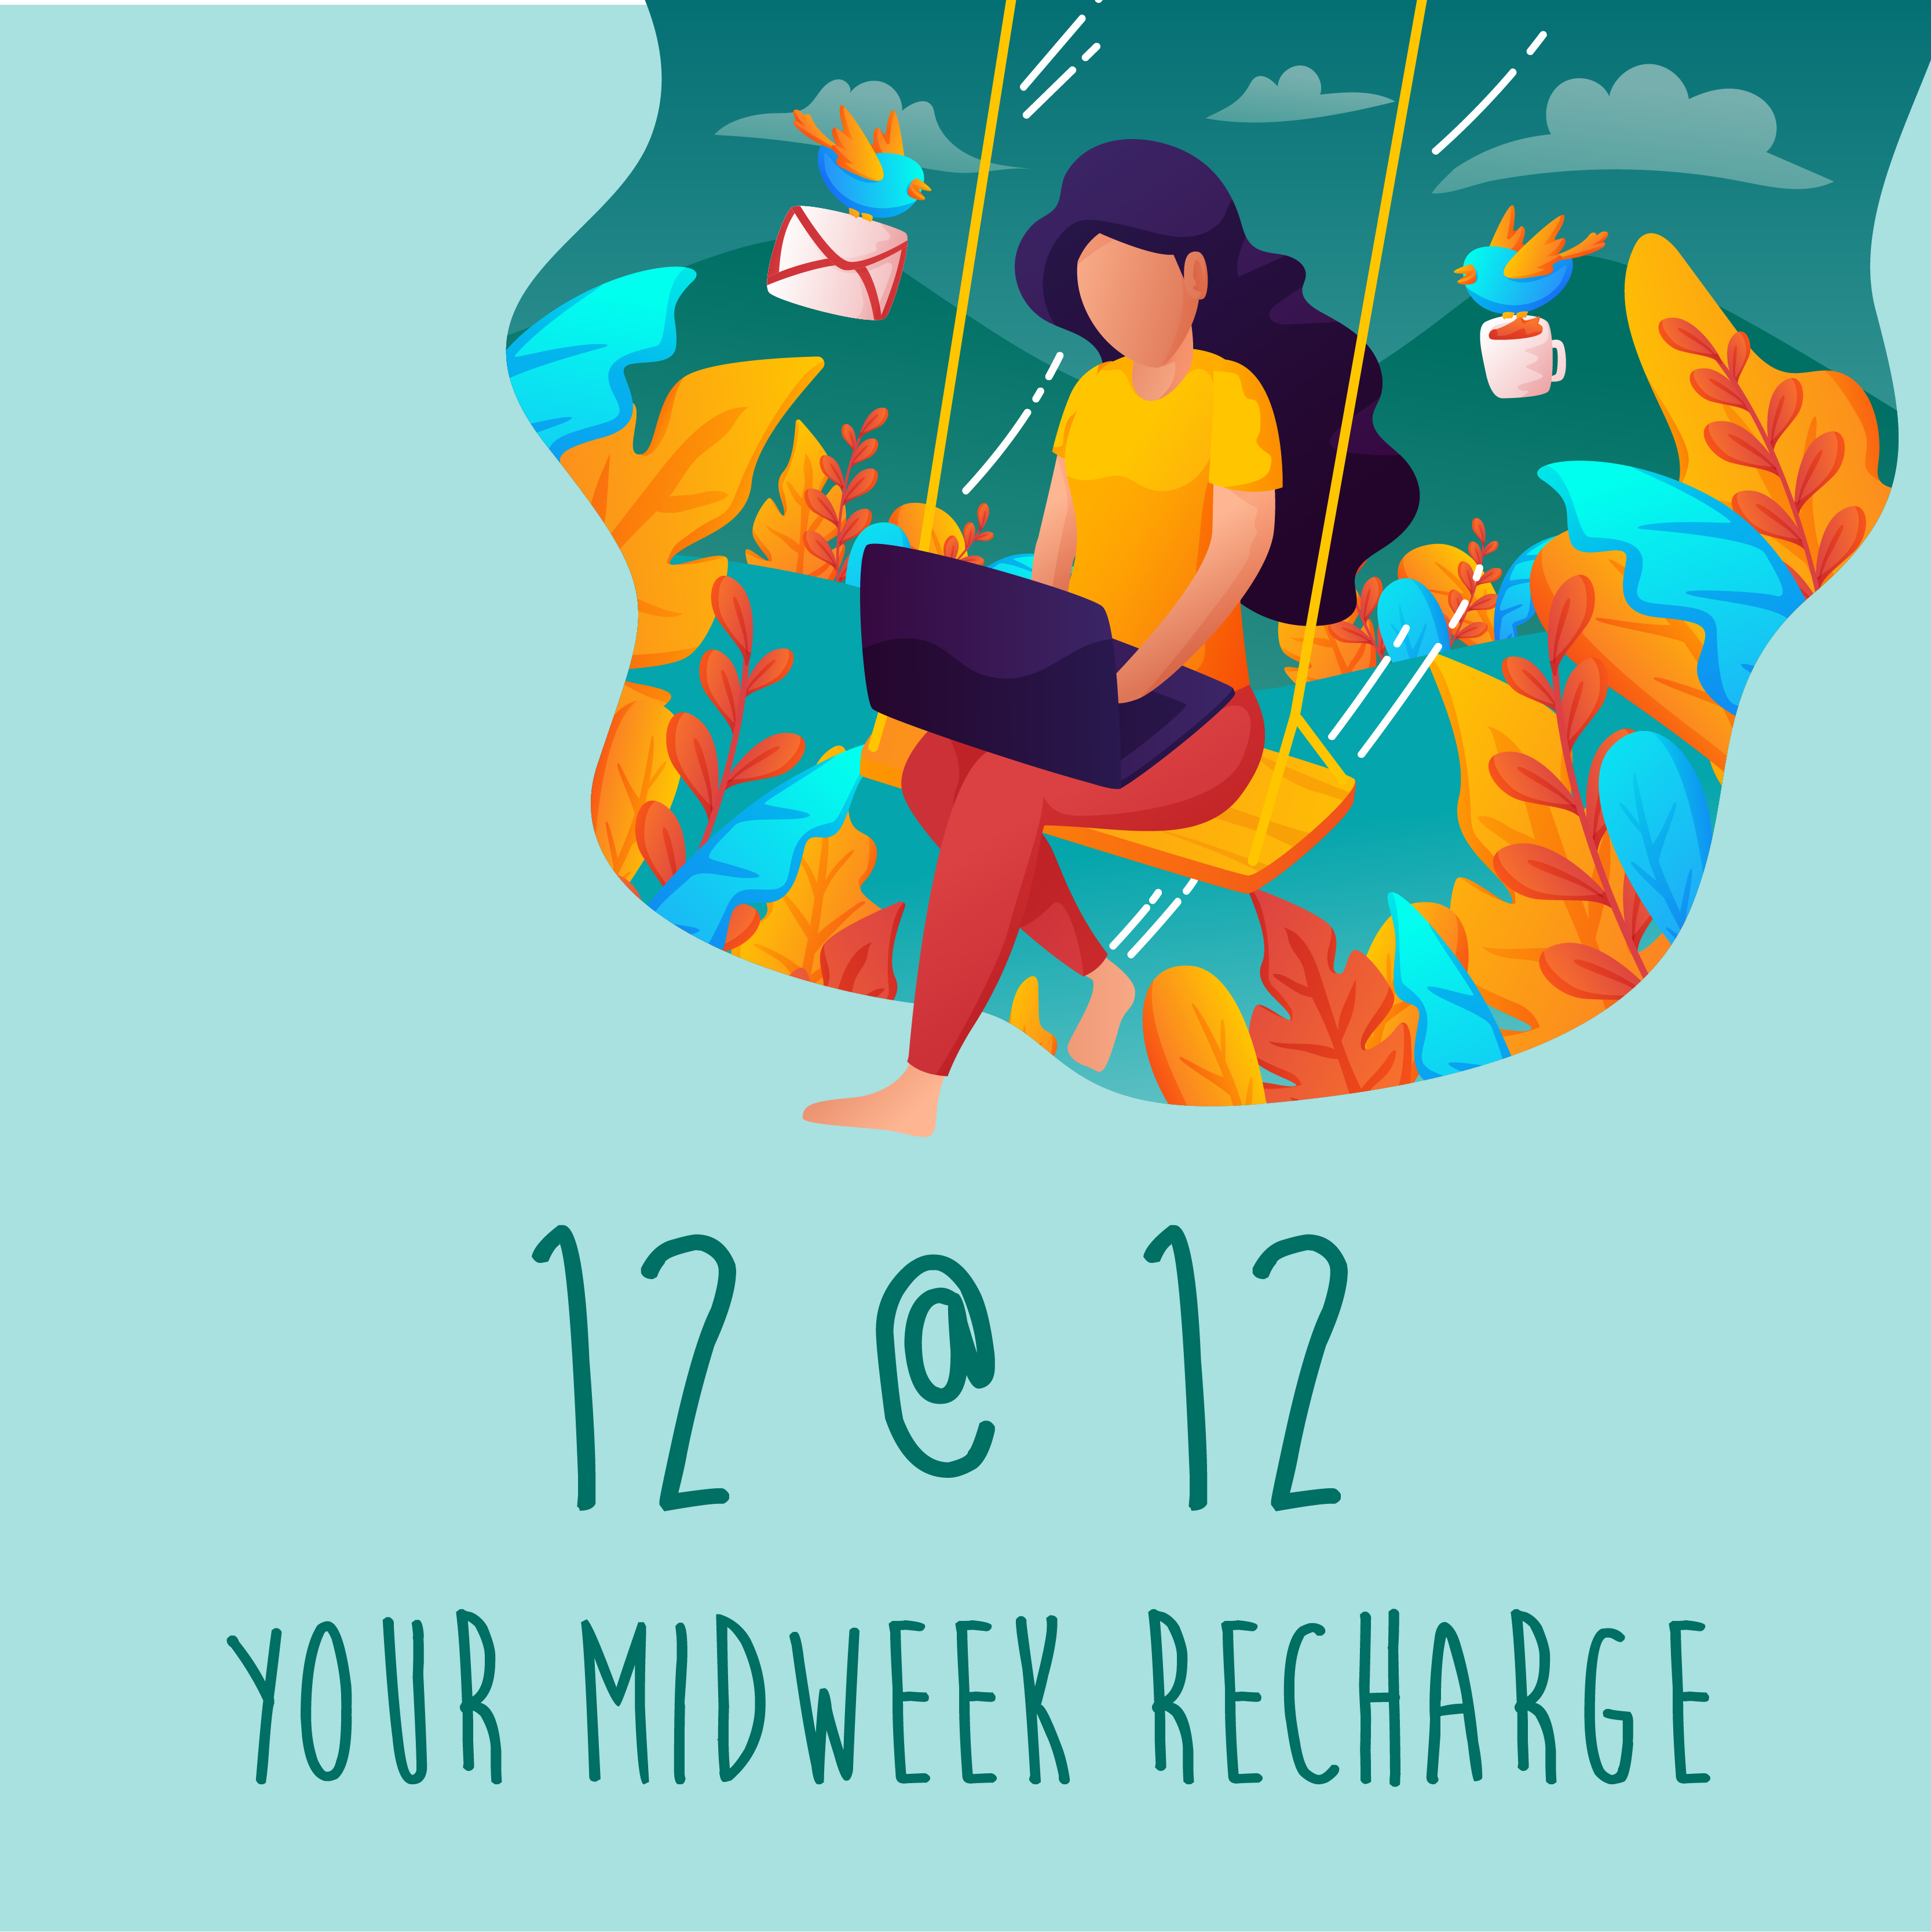 12@12 your mid week recharge